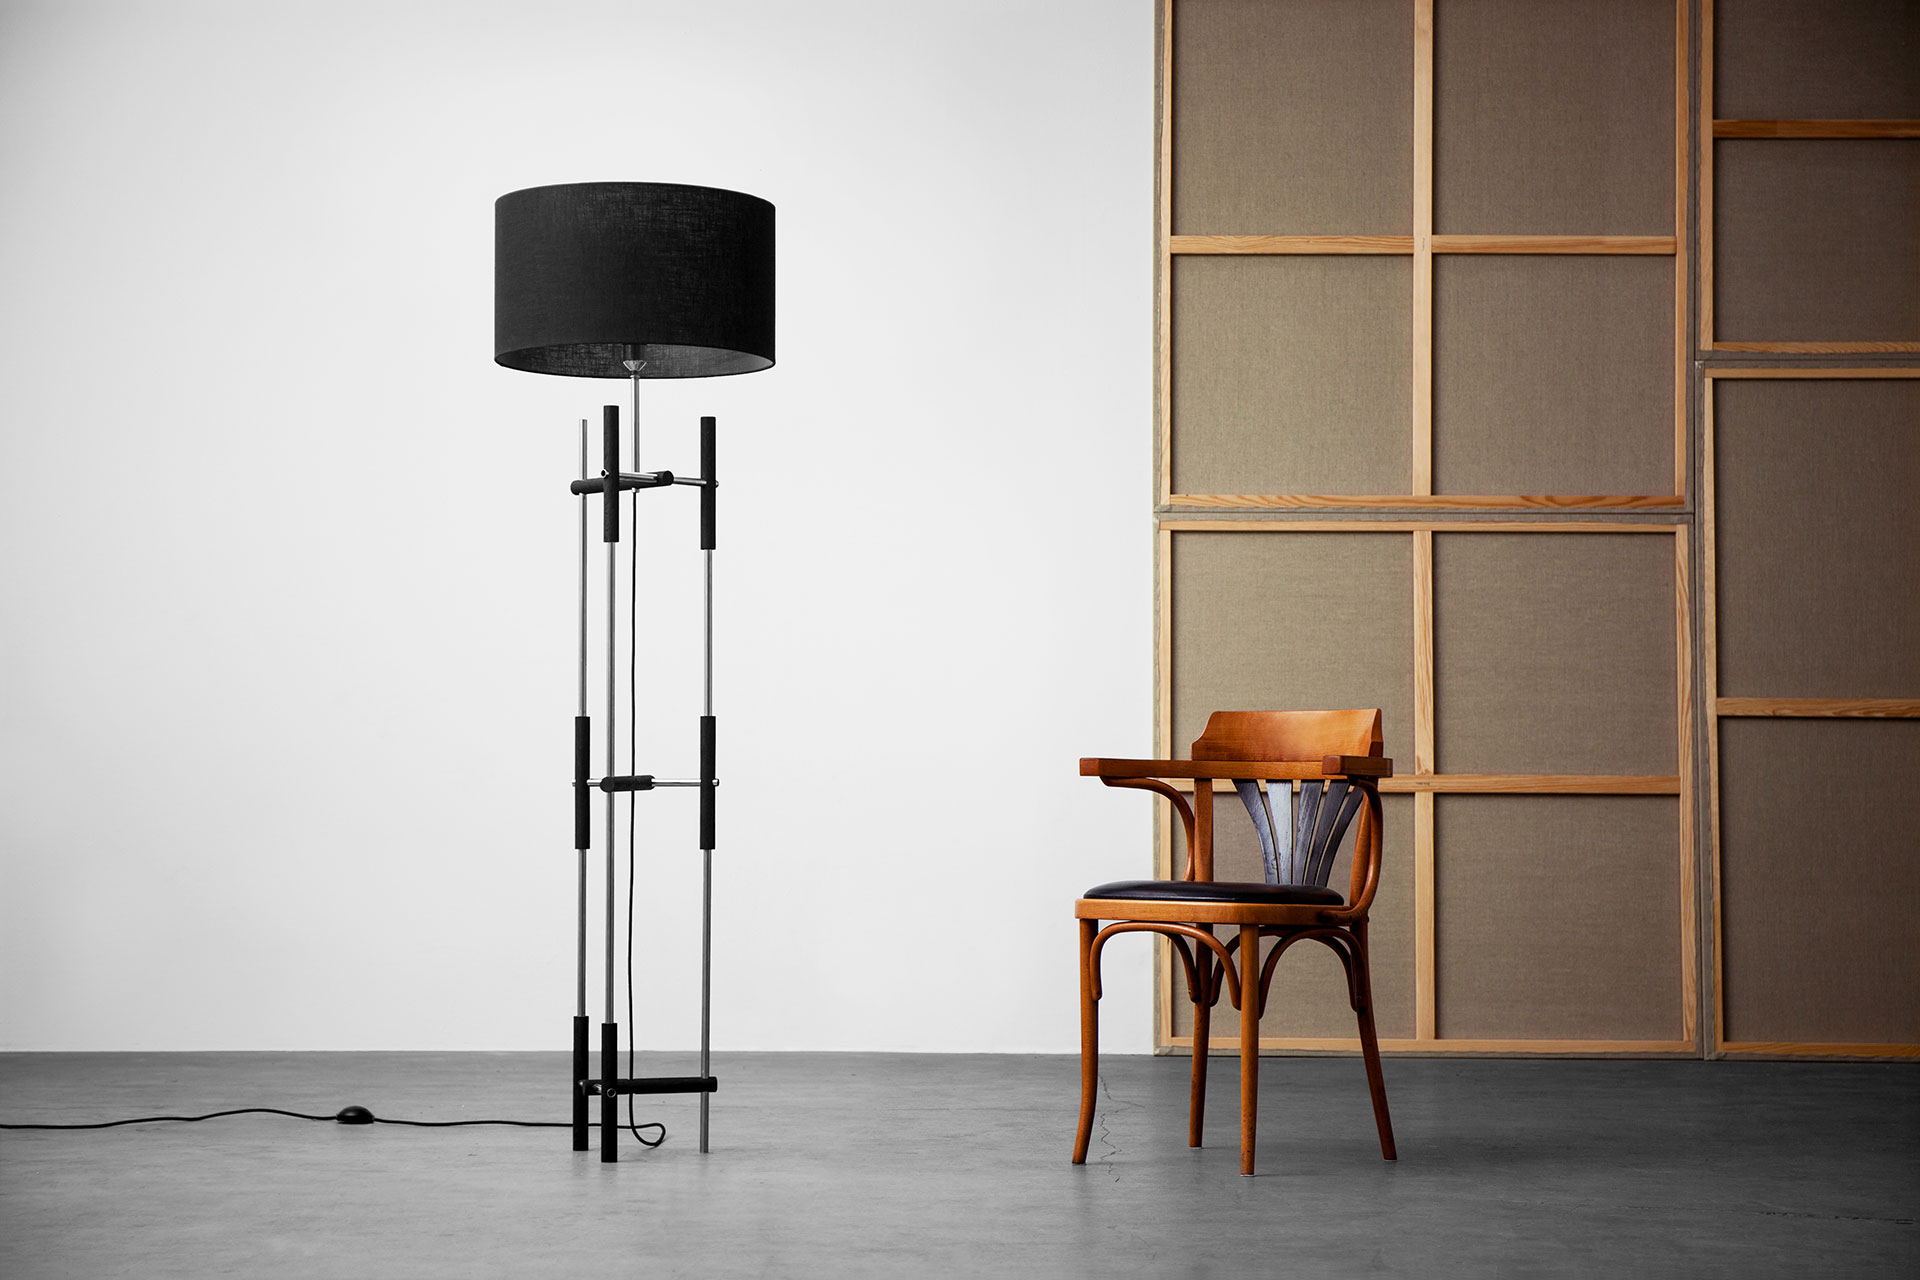 Minimalist design steel floor lamp in loft apartment